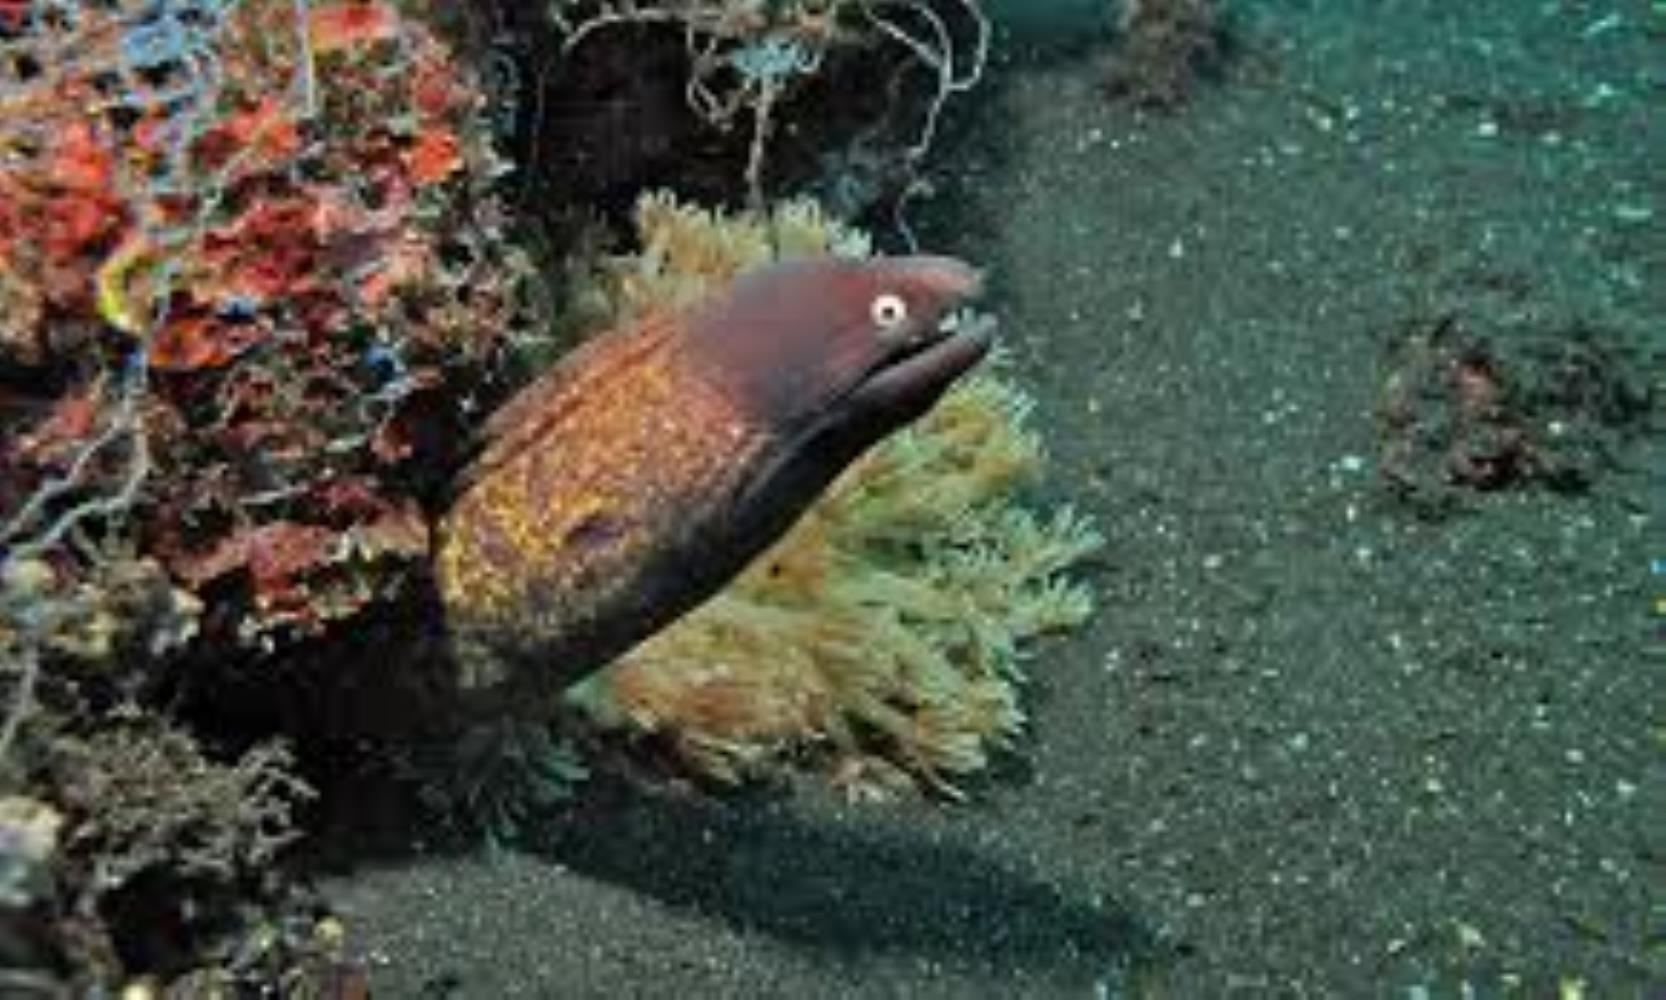 White Eye/ Greyface Moray Eel